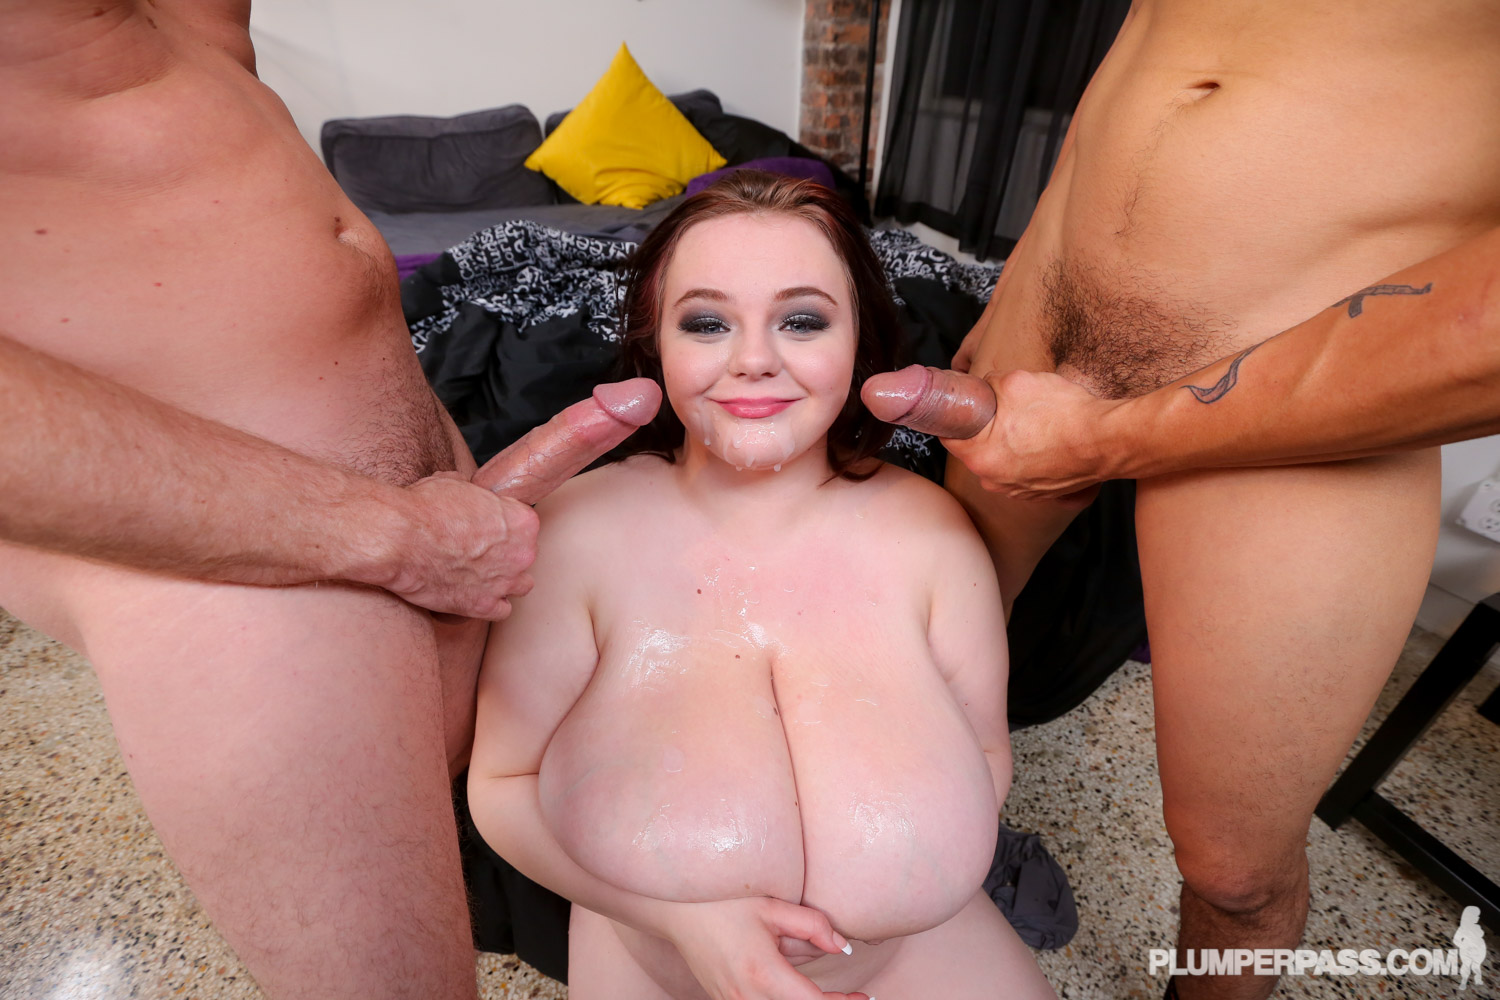 Girl Fucked After She Cums